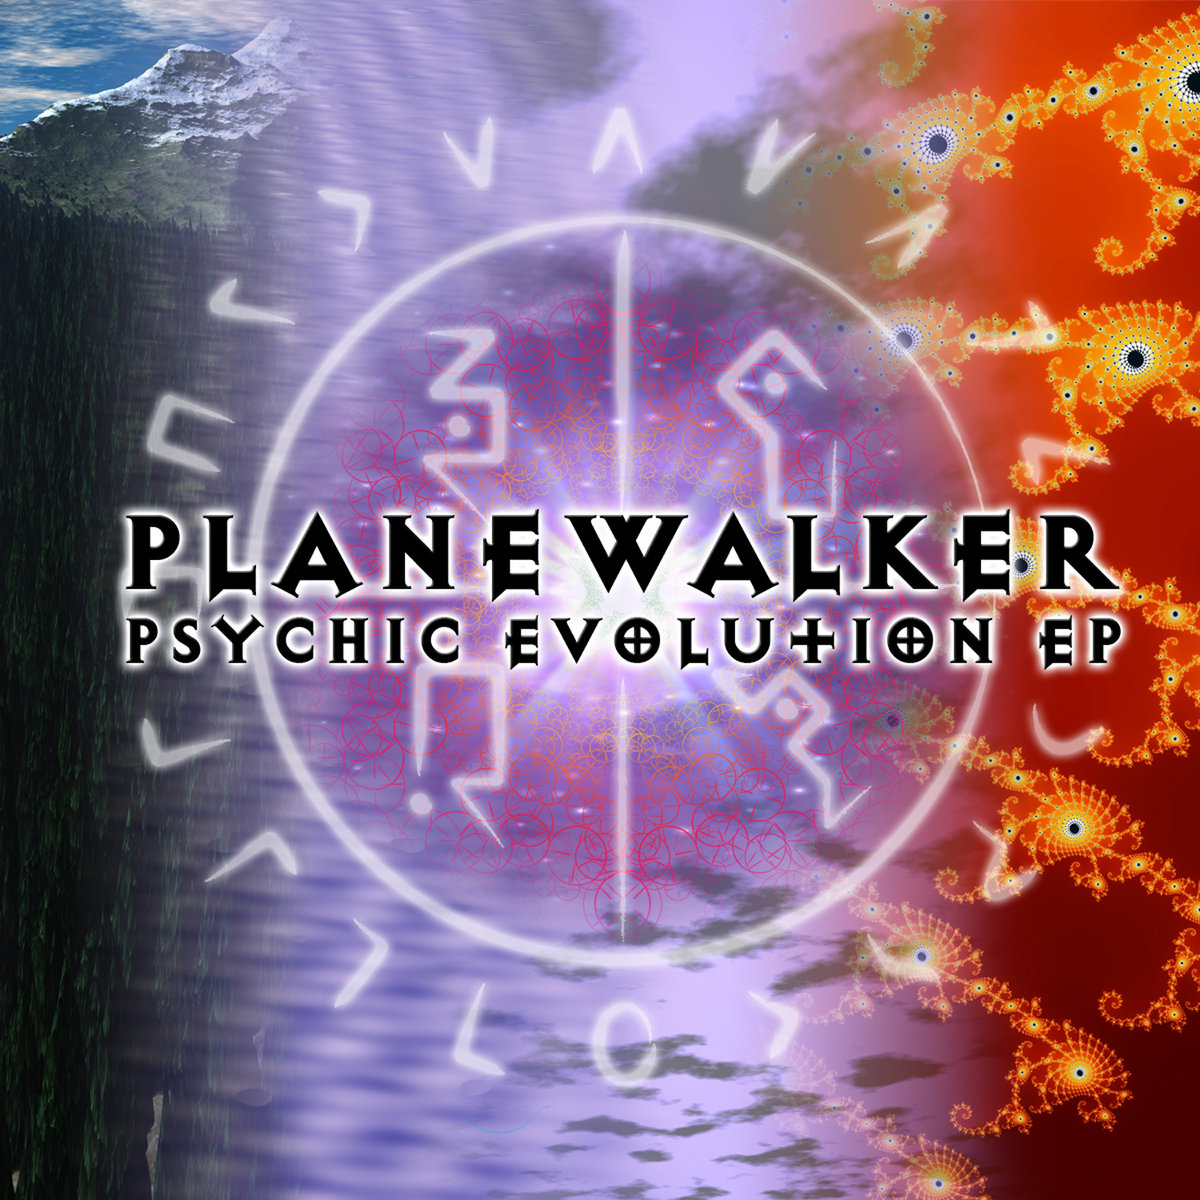 Planewalker - Psychic Evolution